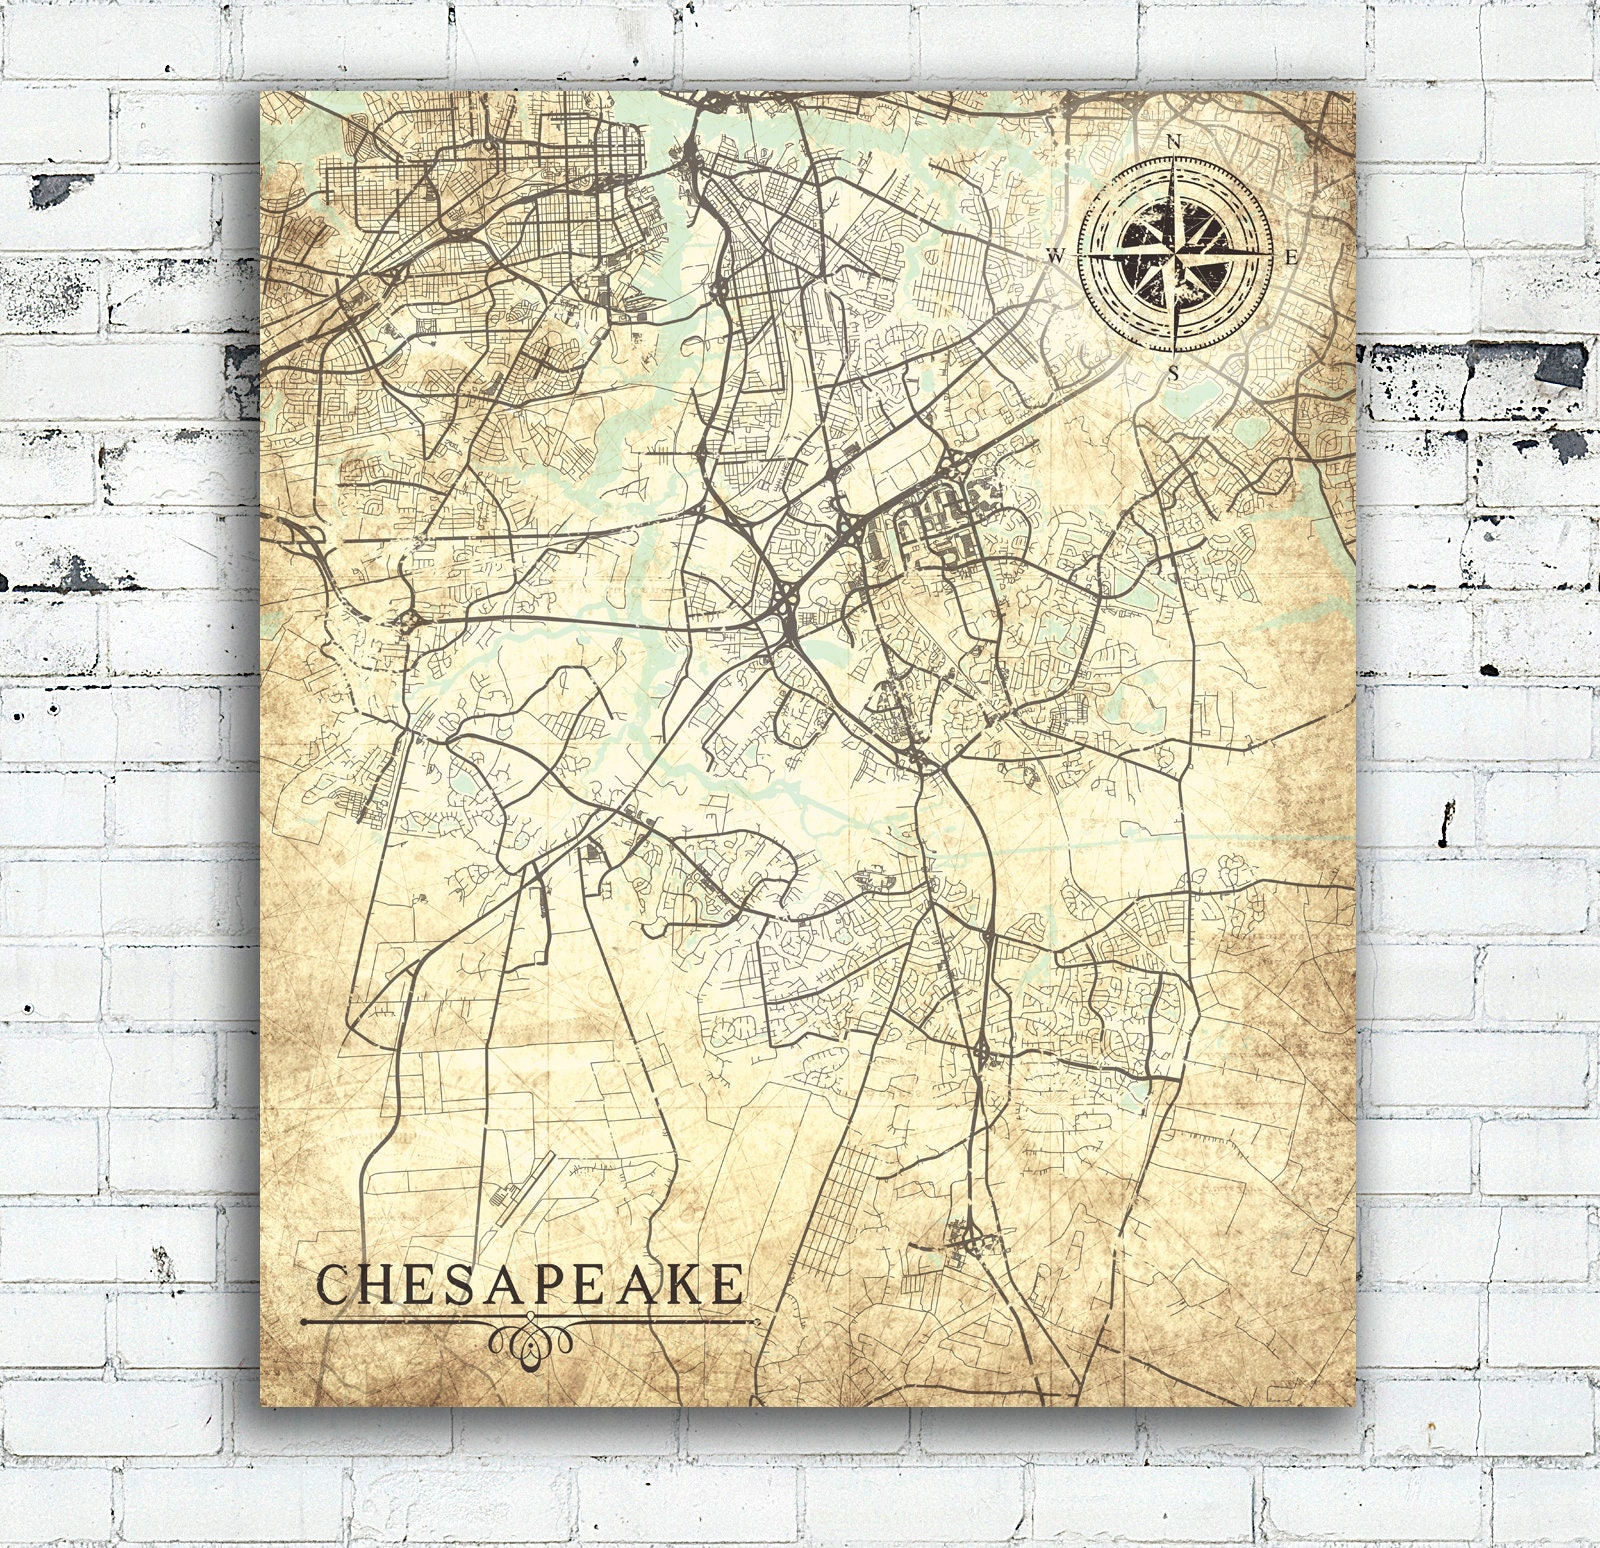 CHESAPEAKE VA Canvas Print VA Chesapeake Virginia Va Vintage ... on map williamsburg va, map windsor va, map tampa va, map montgomery county va, map houston va, map sandbridge beach va, map las vegas va, map fredericksburg va, map glen allen va, map milwaukee va, map manchester va, map galax va, map lebanon va, map front royal va, map hanover va, map tysons corner va, map hampton va, map huntington va, map gloucester county va, map dallas va,